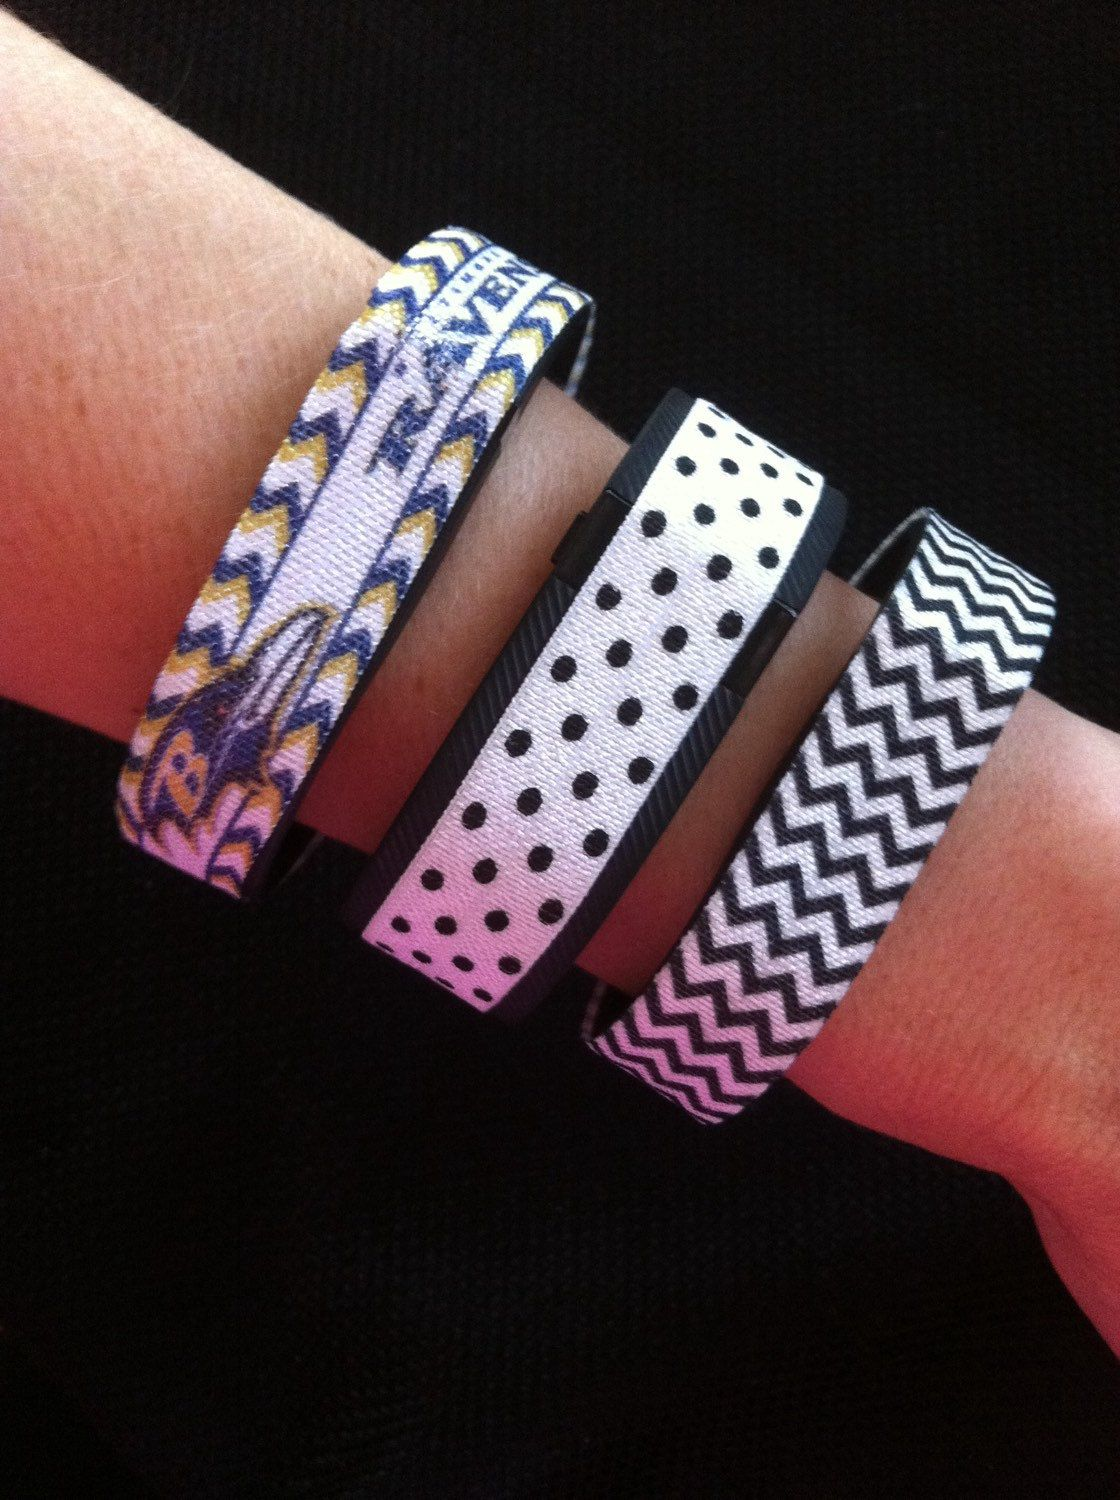 Decorative Elastic Band for Fitbit Flex, Fitbit Charge and ChargeHR